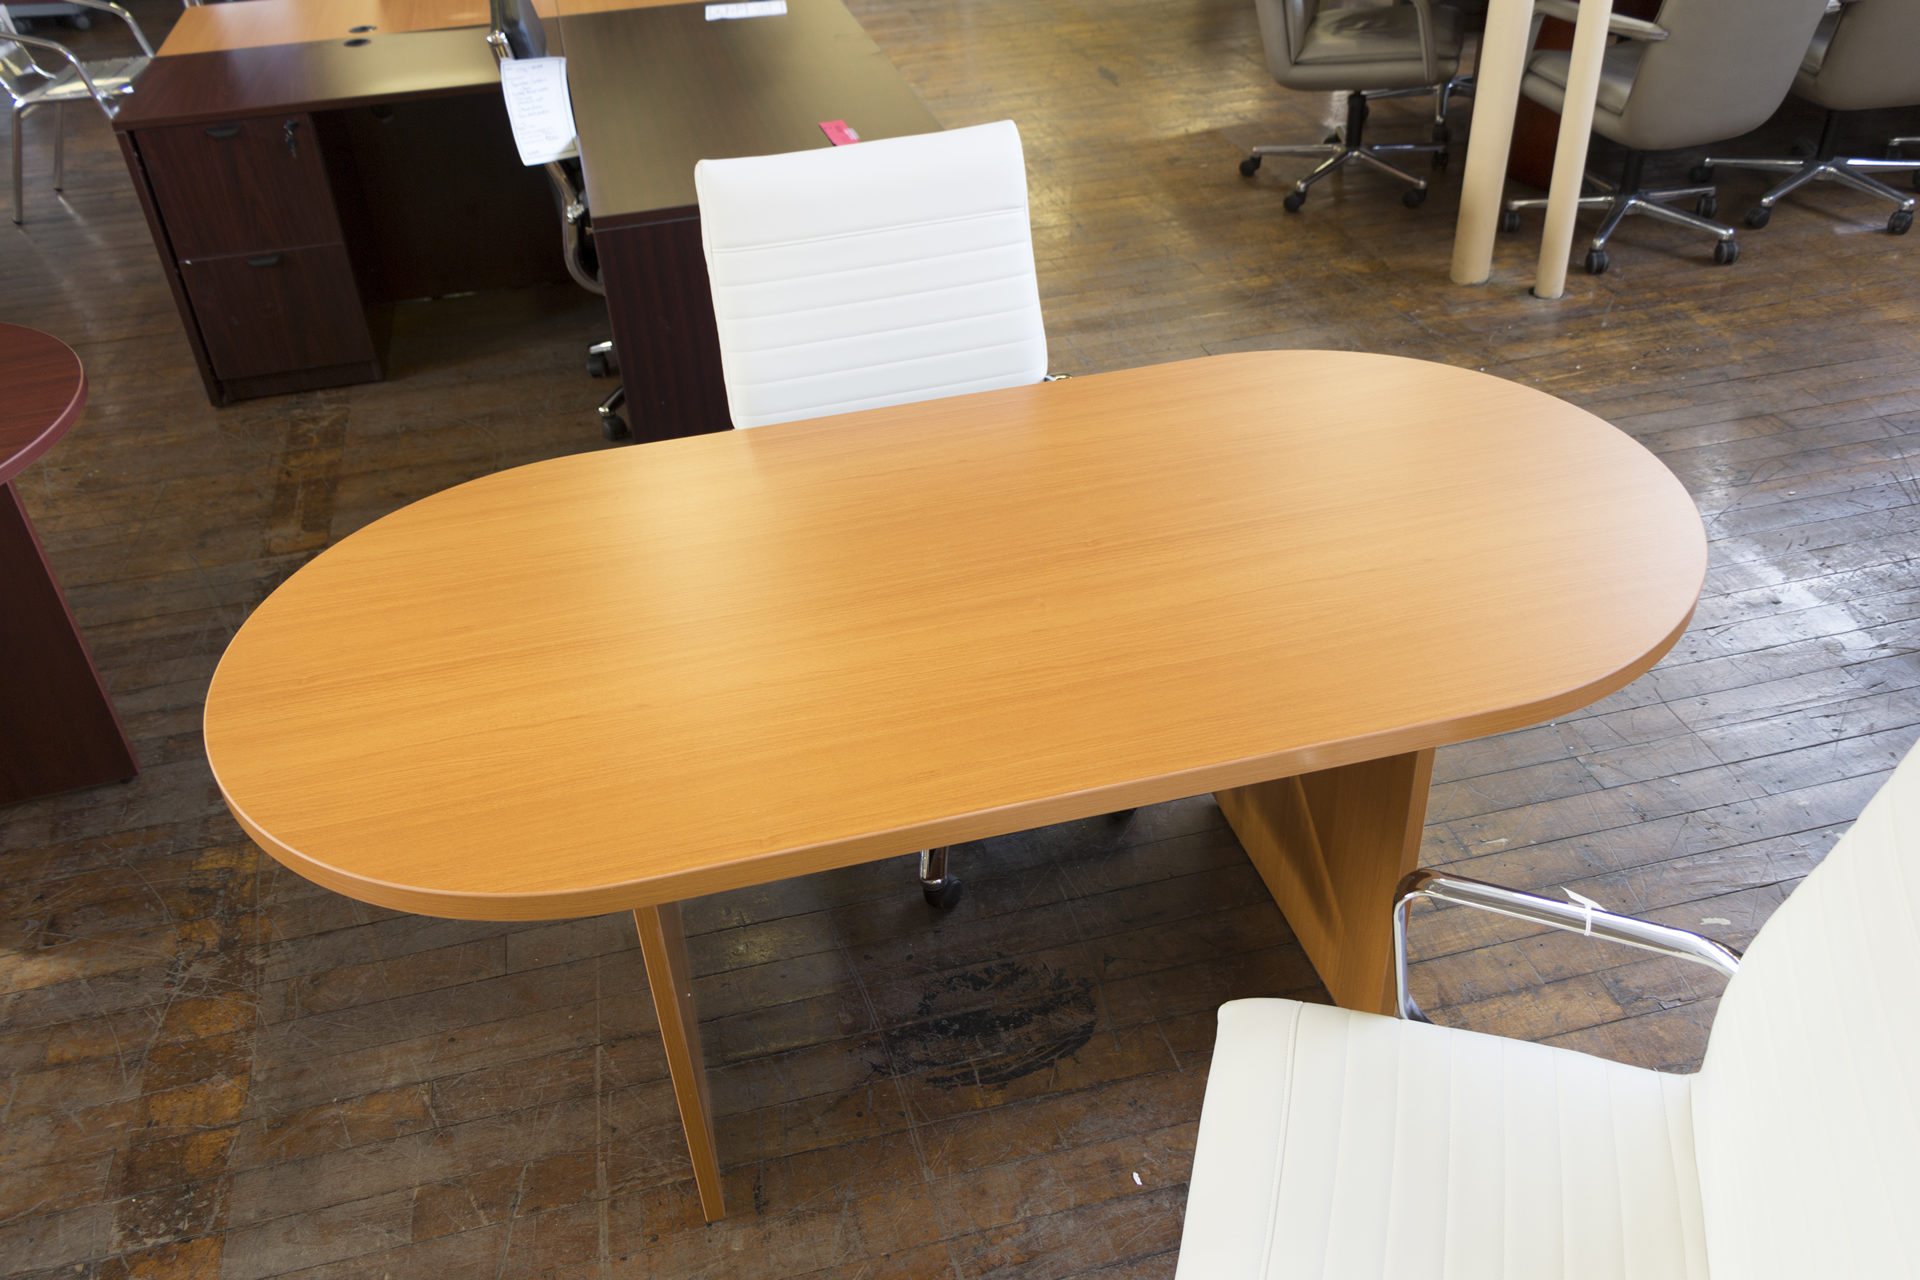 peartreeofficefurniture_peartreeofficefurniture_mg_3112.jpg